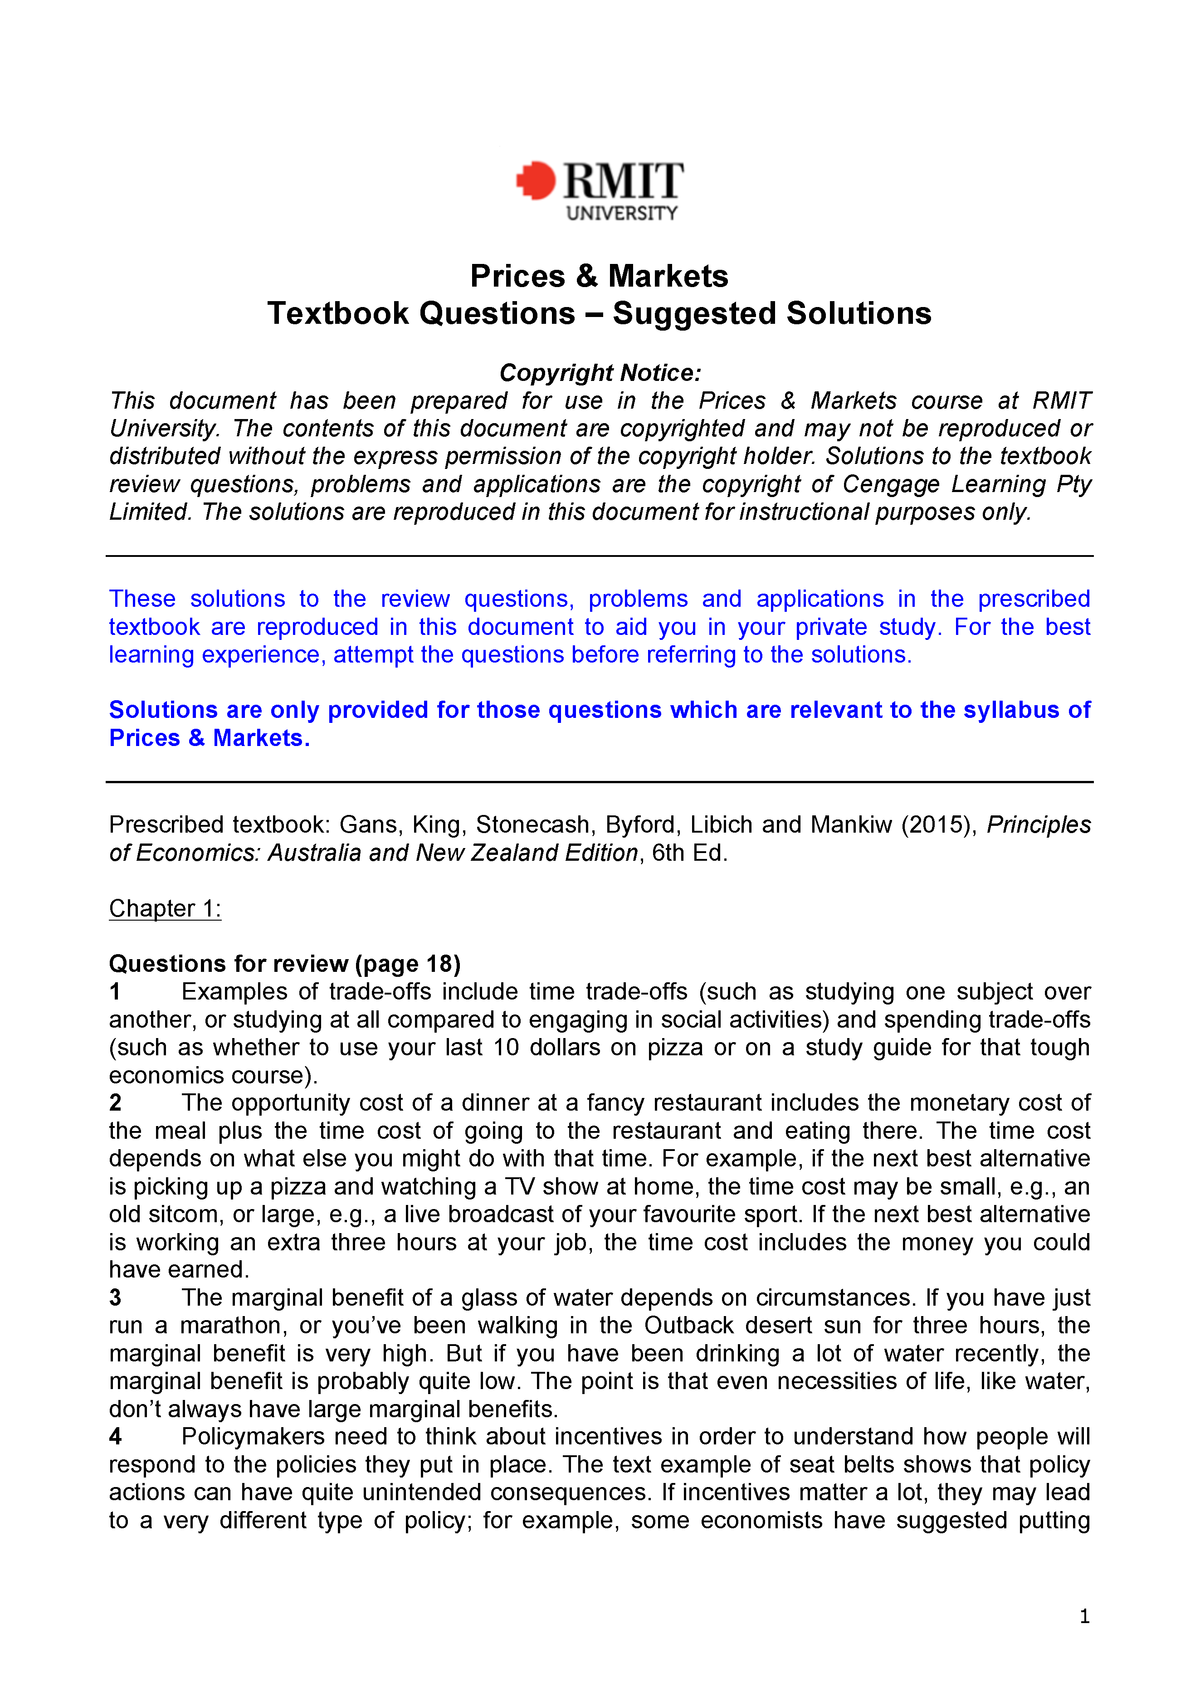 Solutions to Textbook Questions(3) pdf - ECON1275 - RMIT